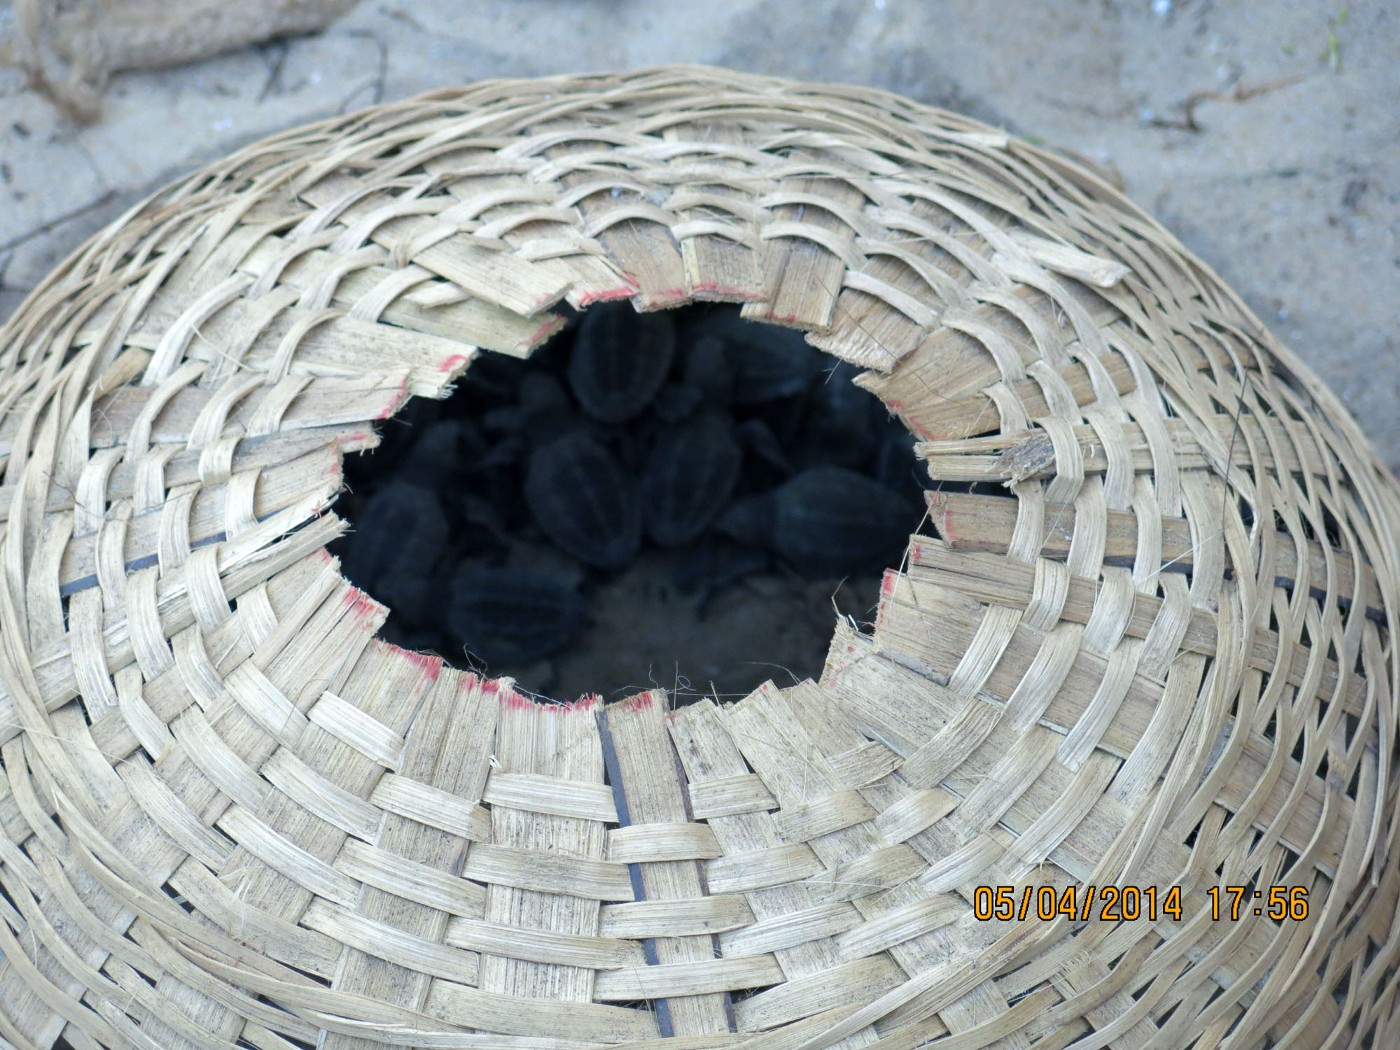 Turtle Hatchlings kept safe in baskets